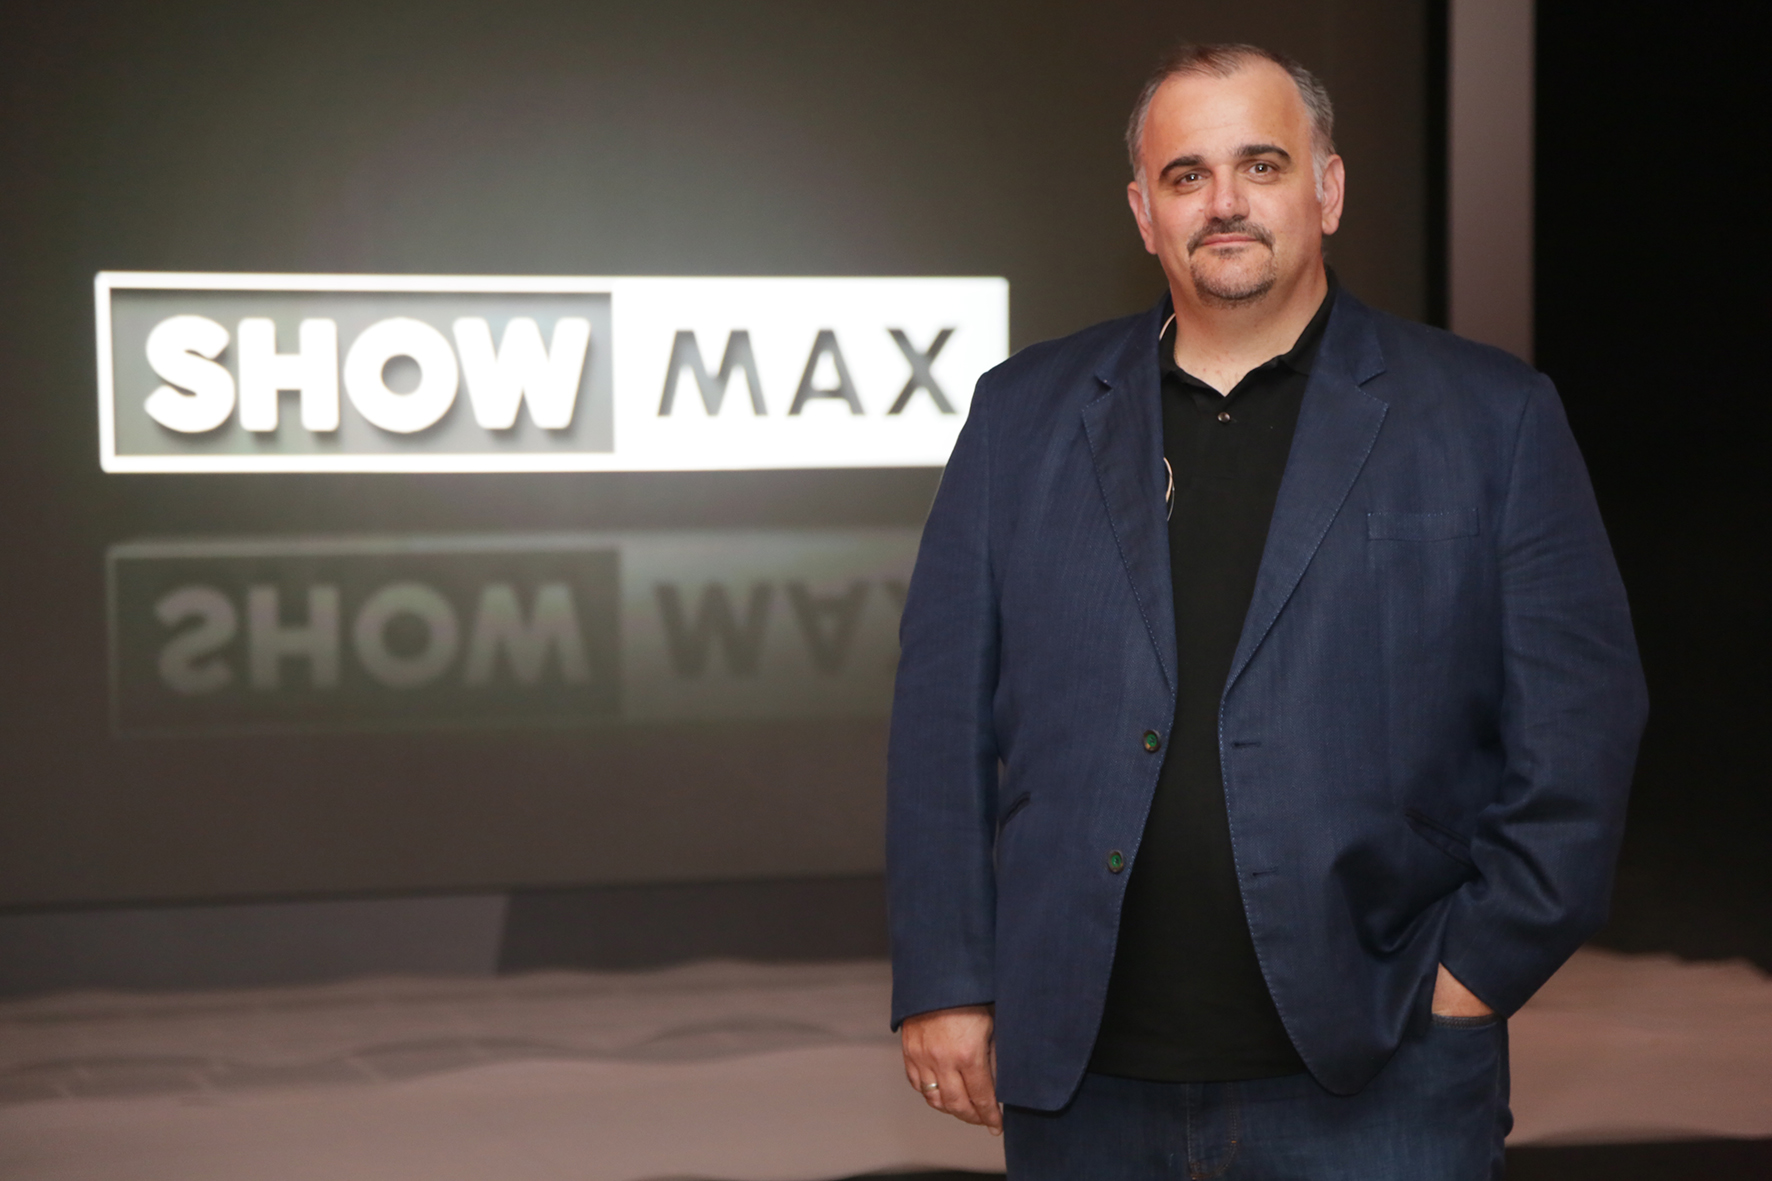 John Kotsaftis, General Manager of ShowMax South Africa